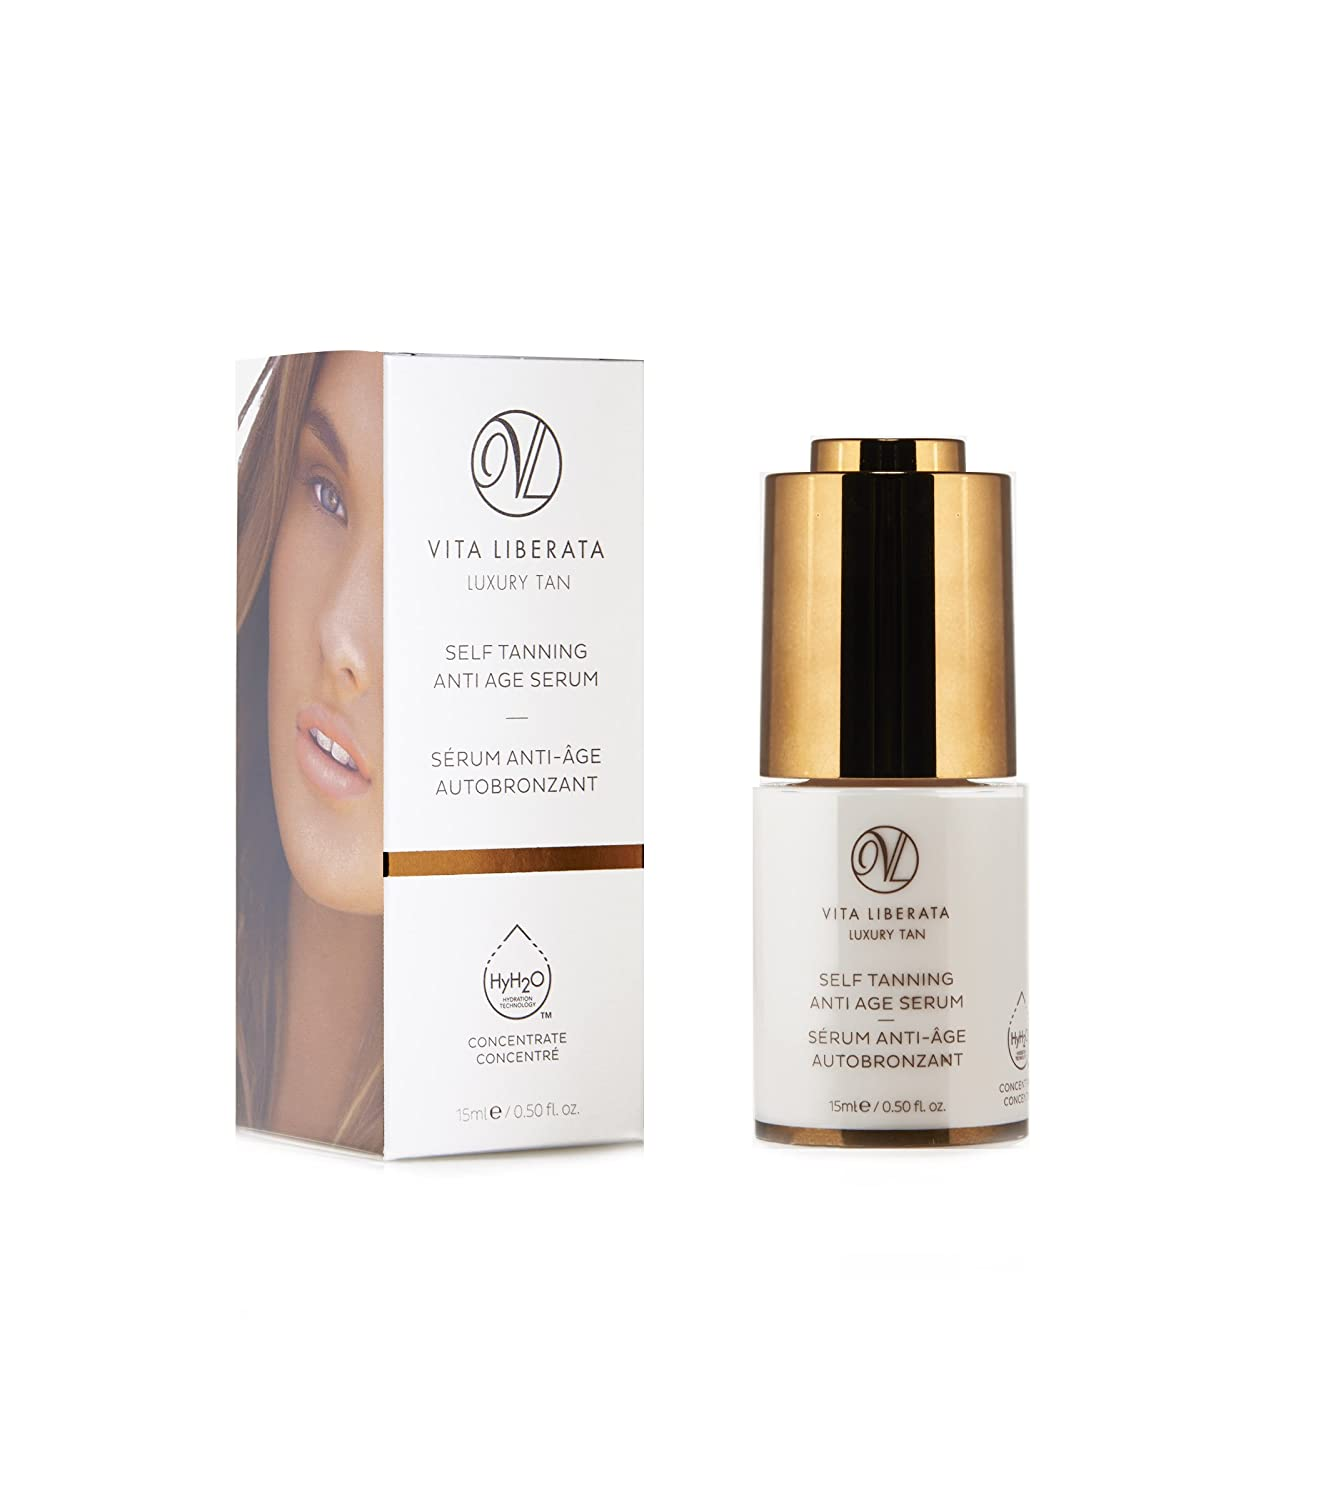 Vita Liberata - Self Tanning Anti Age Serum wr695